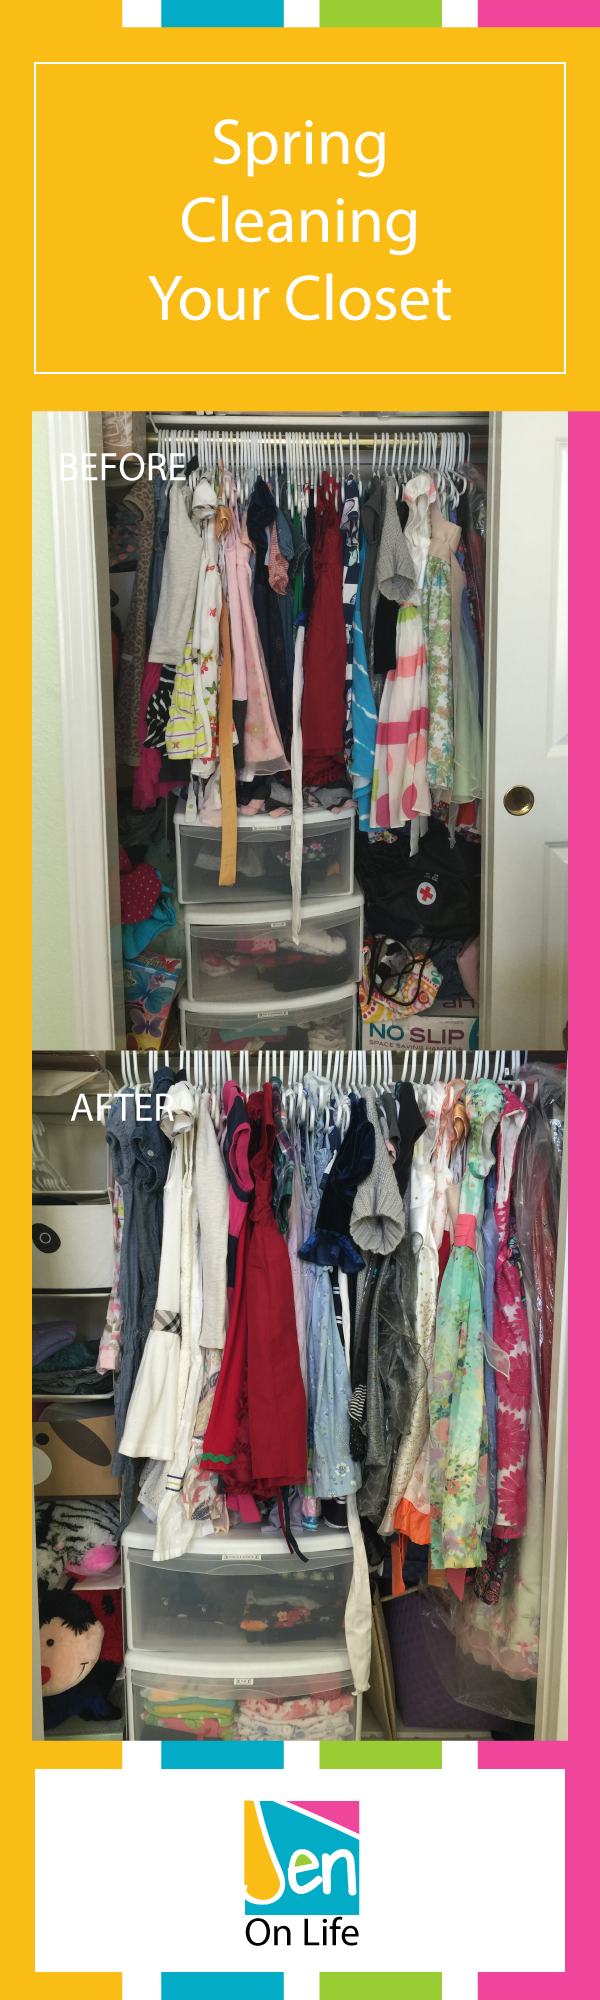 pin-spring-cleaning-closet